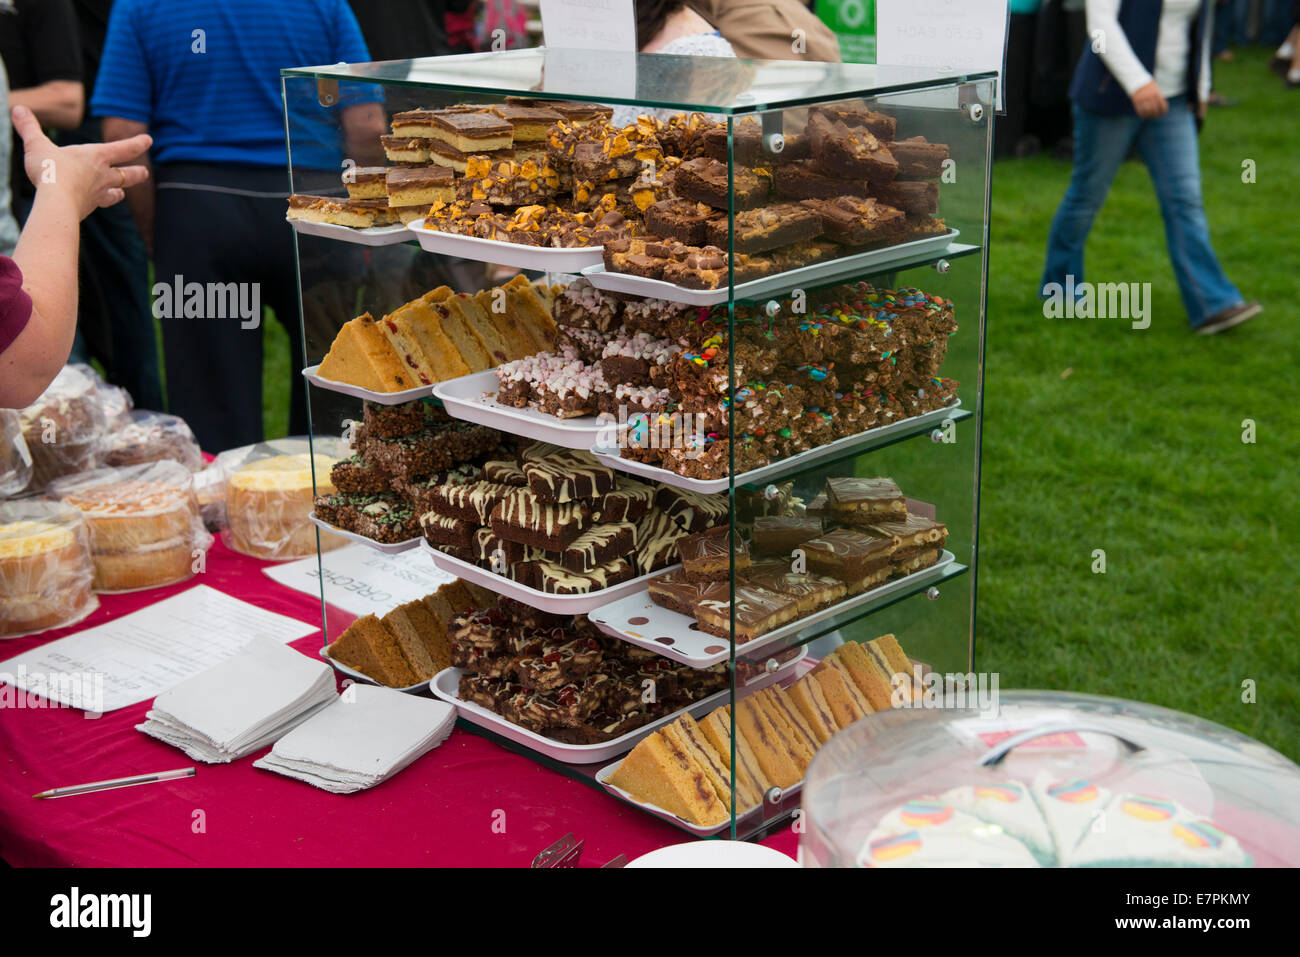 Handmade In Ludlow stall at the 2014 Ludlow Food Festival, Friday 12th September. - Stock Image